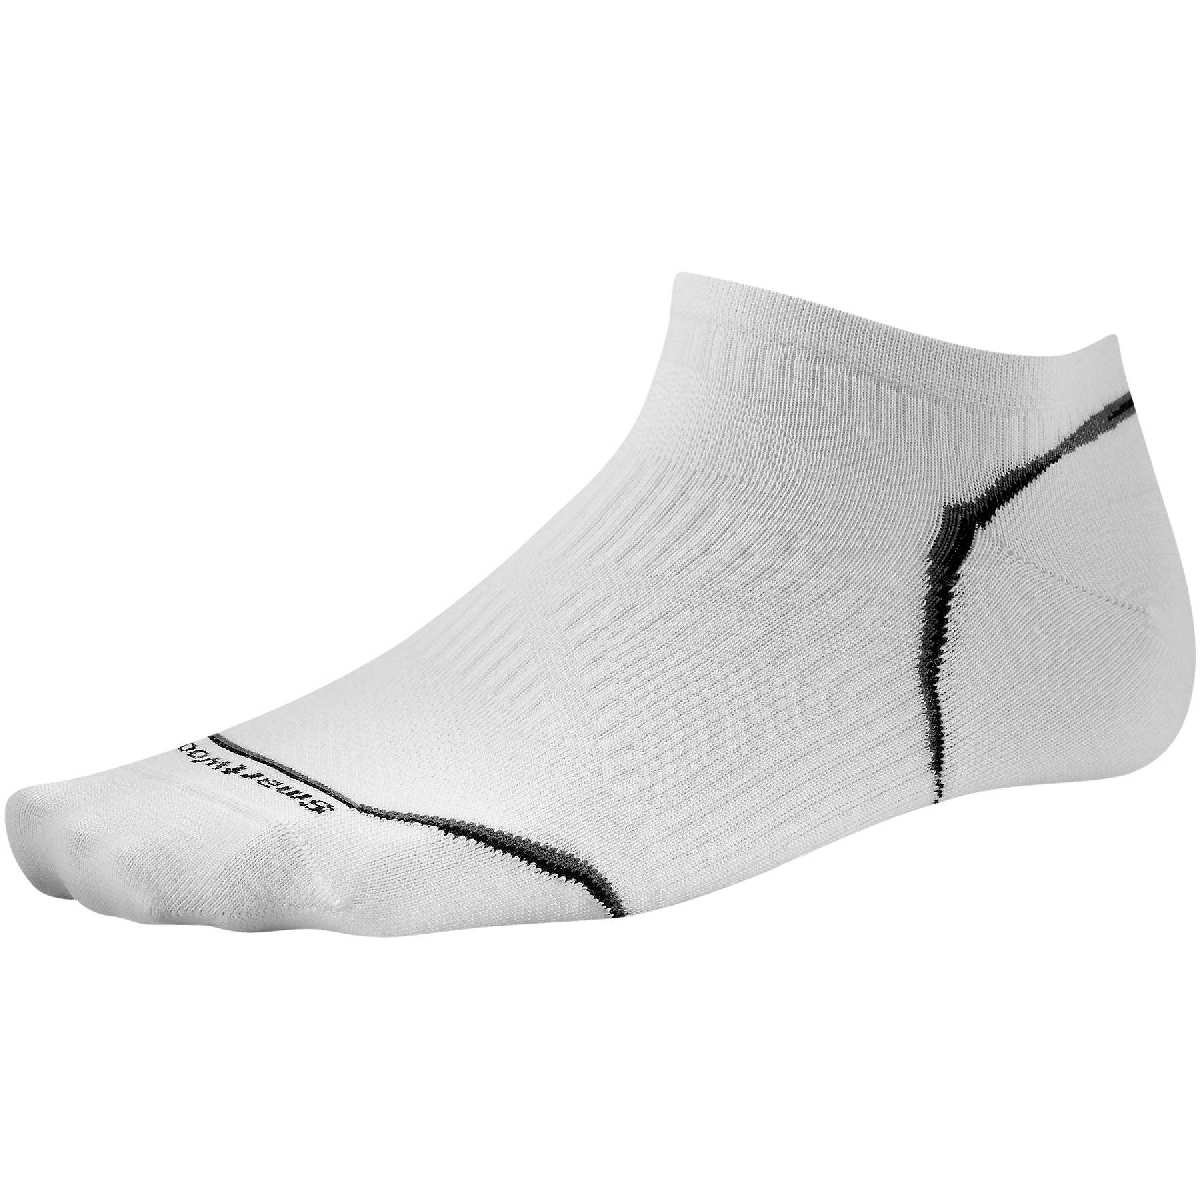 SmartWool PhD Ultra Light Micro Cycling Sock Size M White U.S.A. & Canada